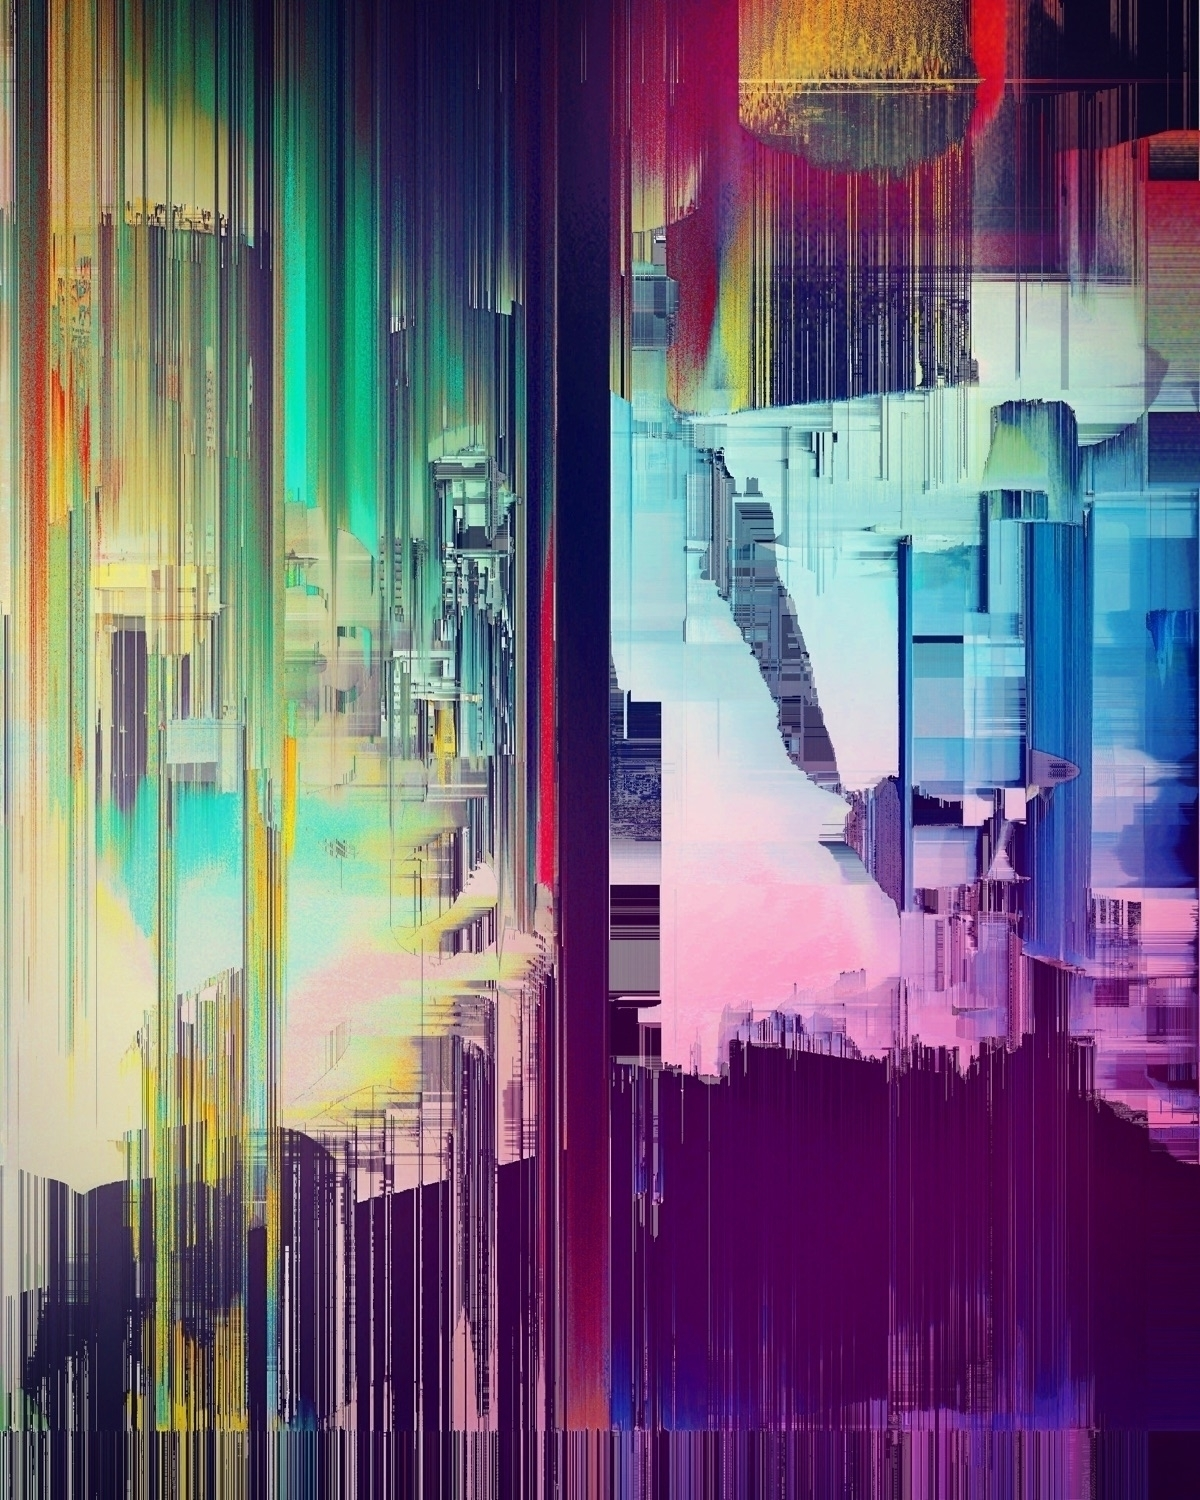 _Hyper density rainbows_ Spent  - cgwarex | ello